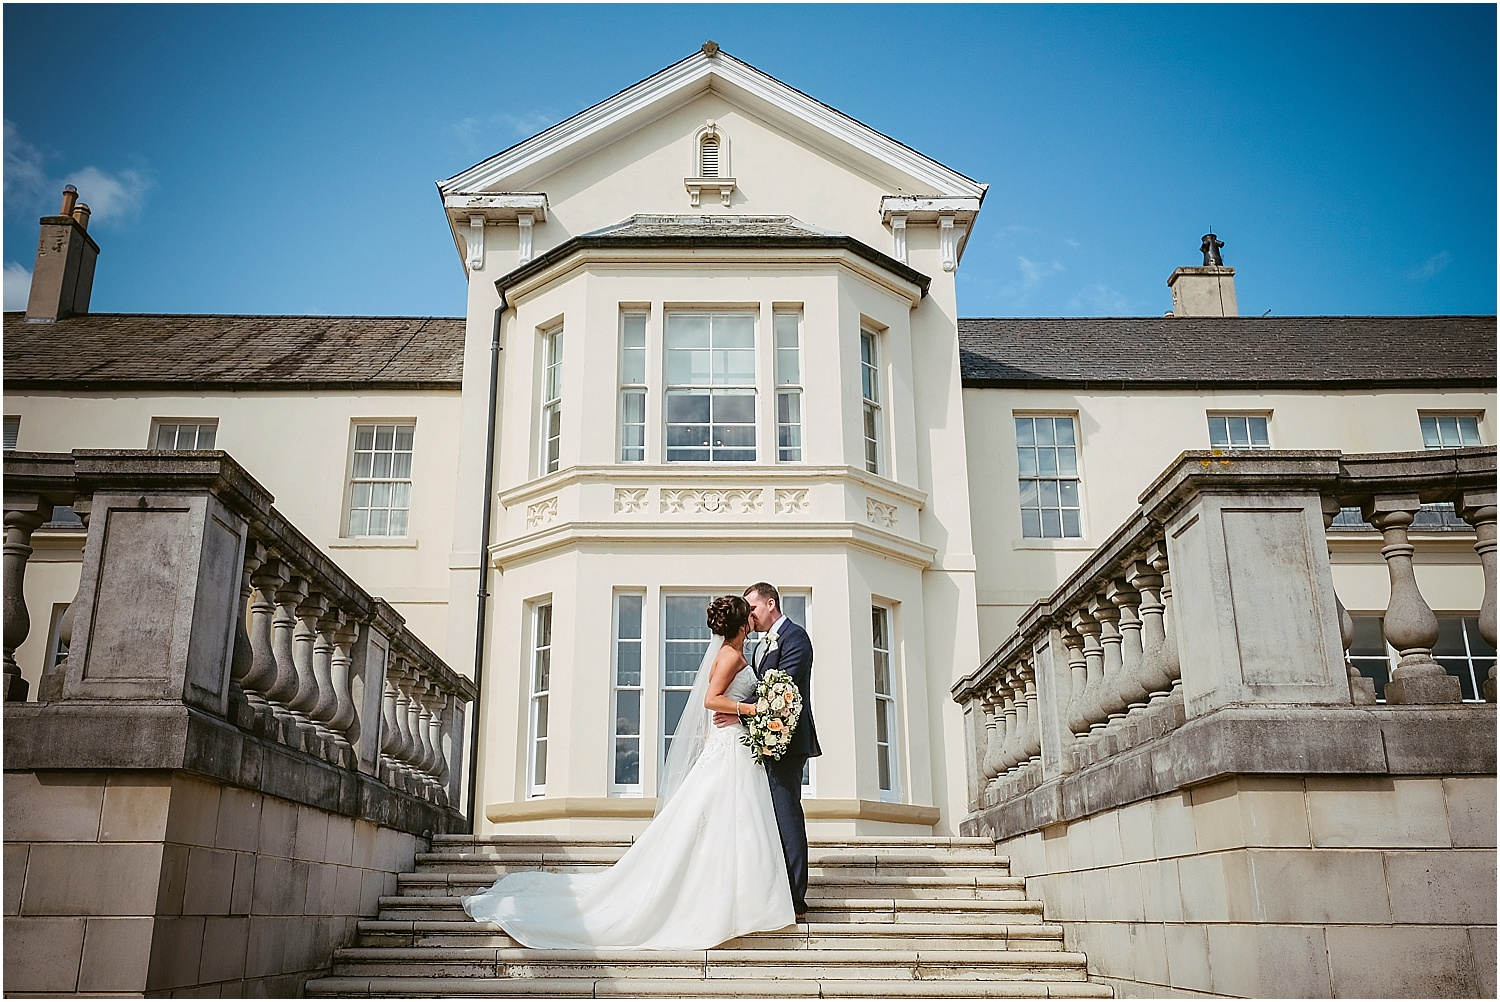 Wedding at Seaham Hall - wedding photography by www.2tonephotography.co.uk 052.jpg